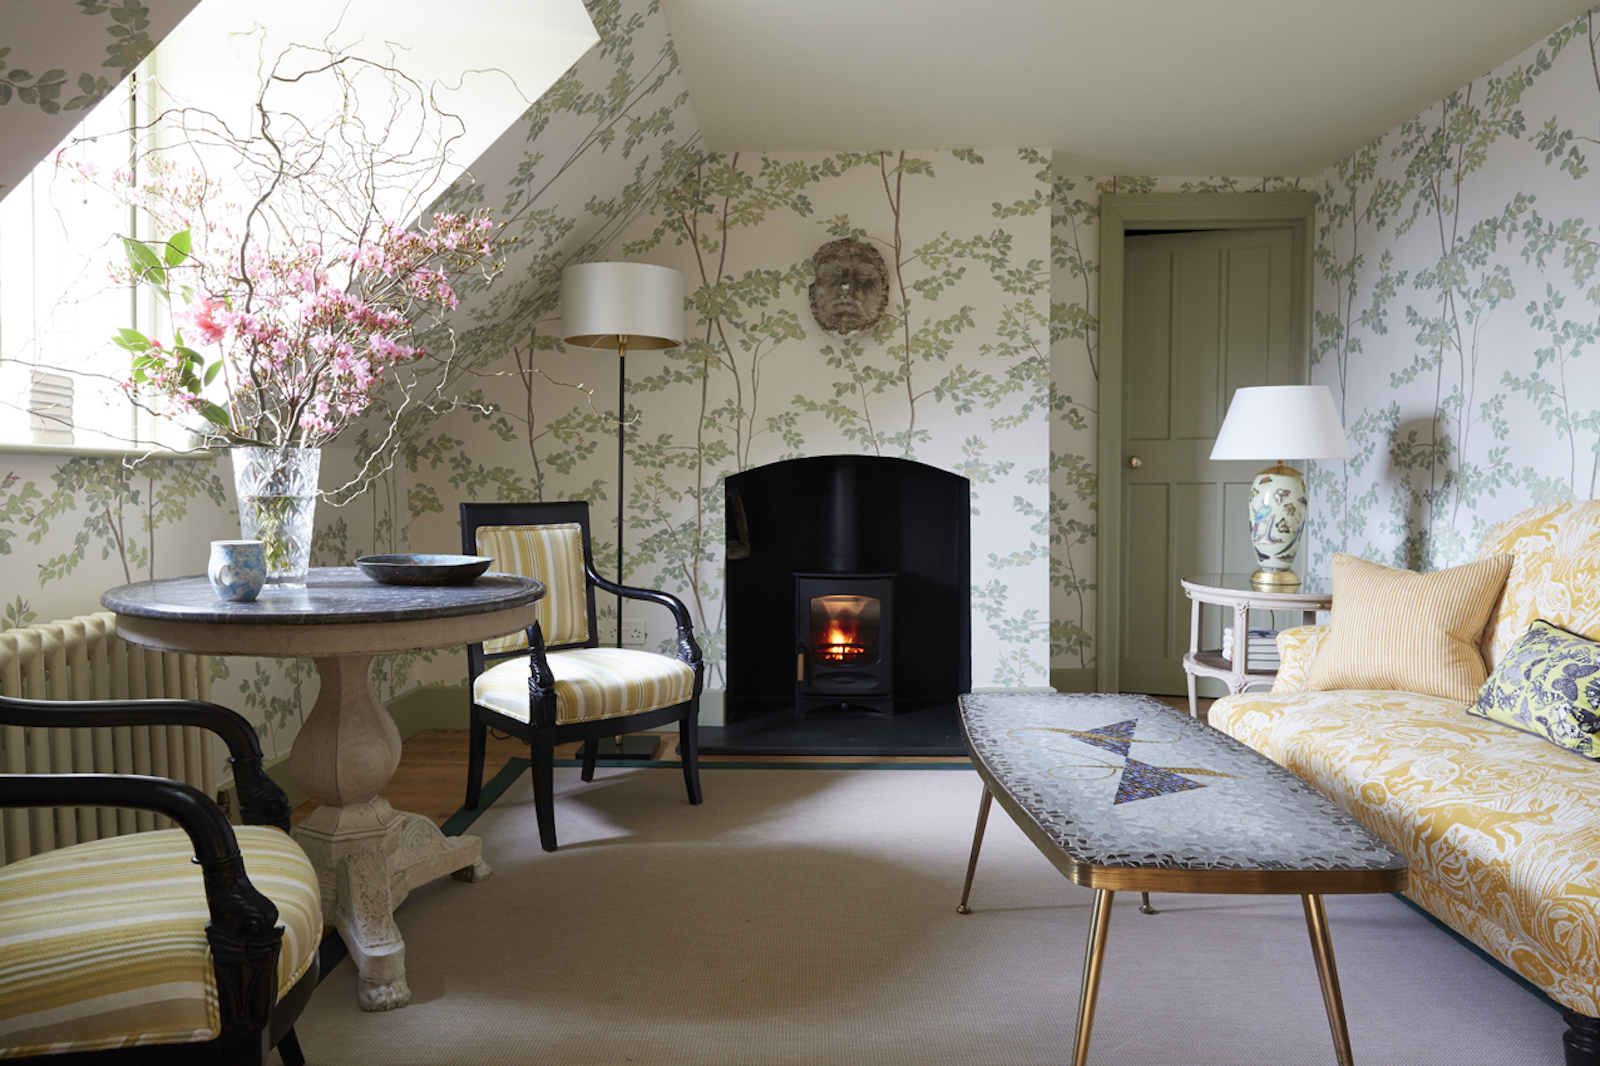 hotel endsleigh review